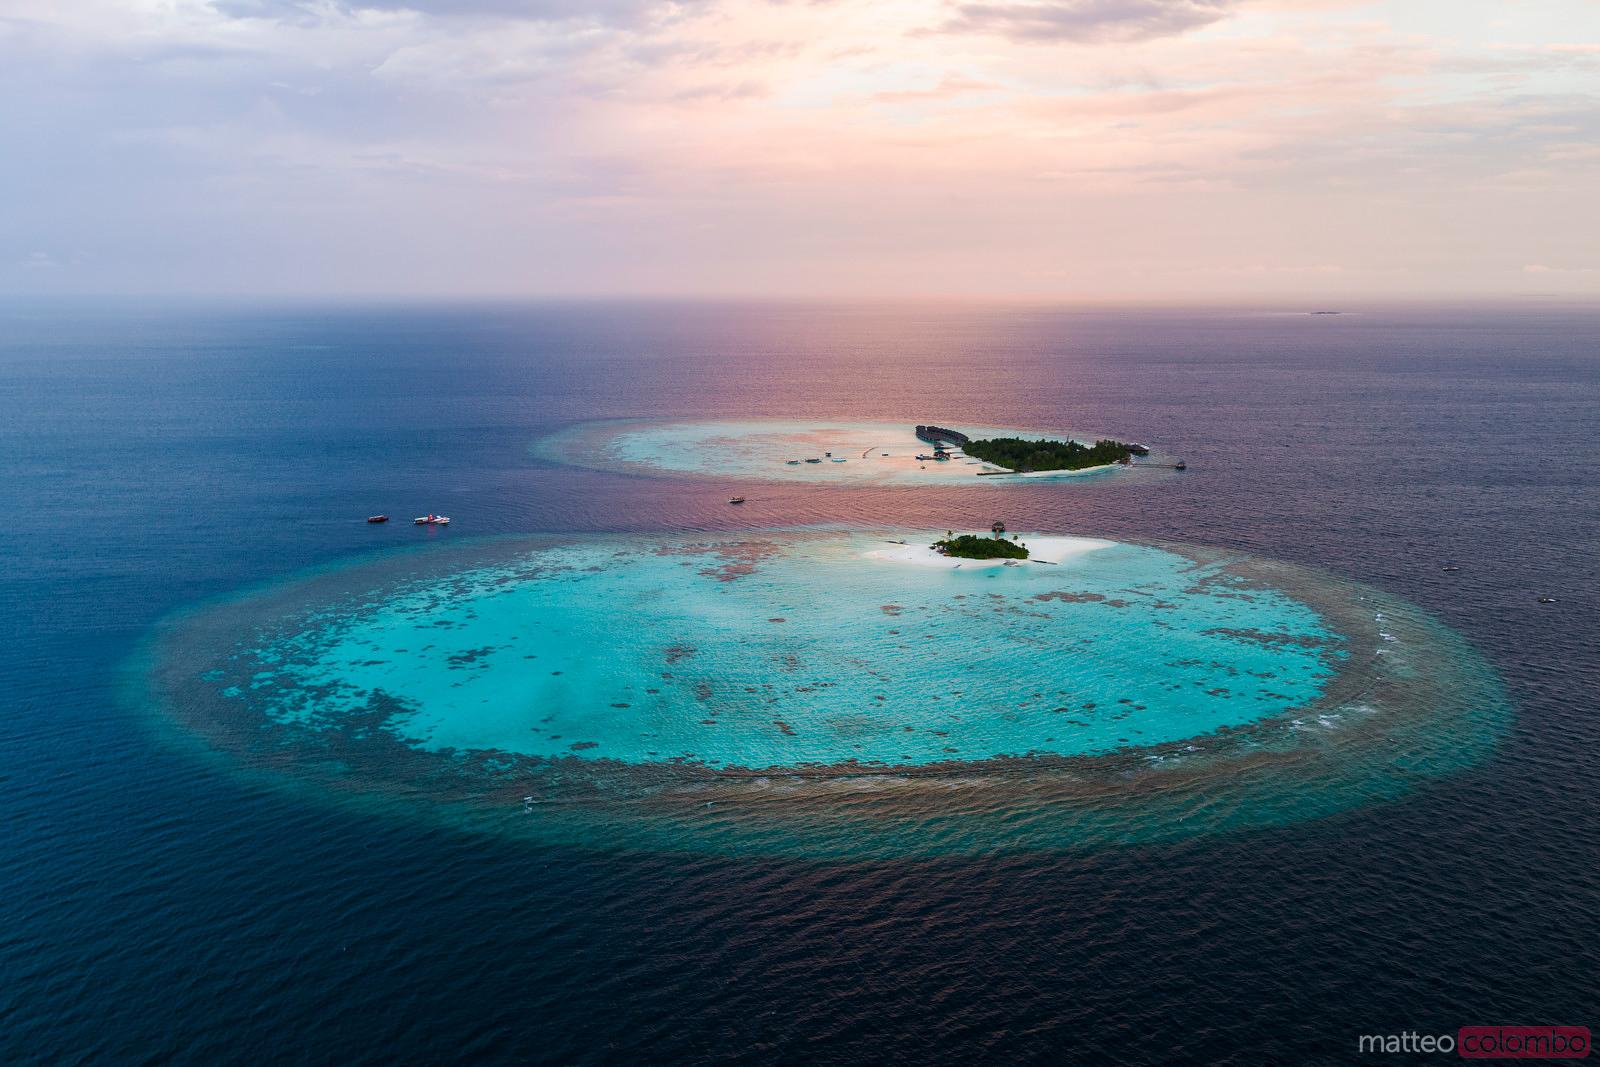 Aerial view of two islands in the Maldives at sunset